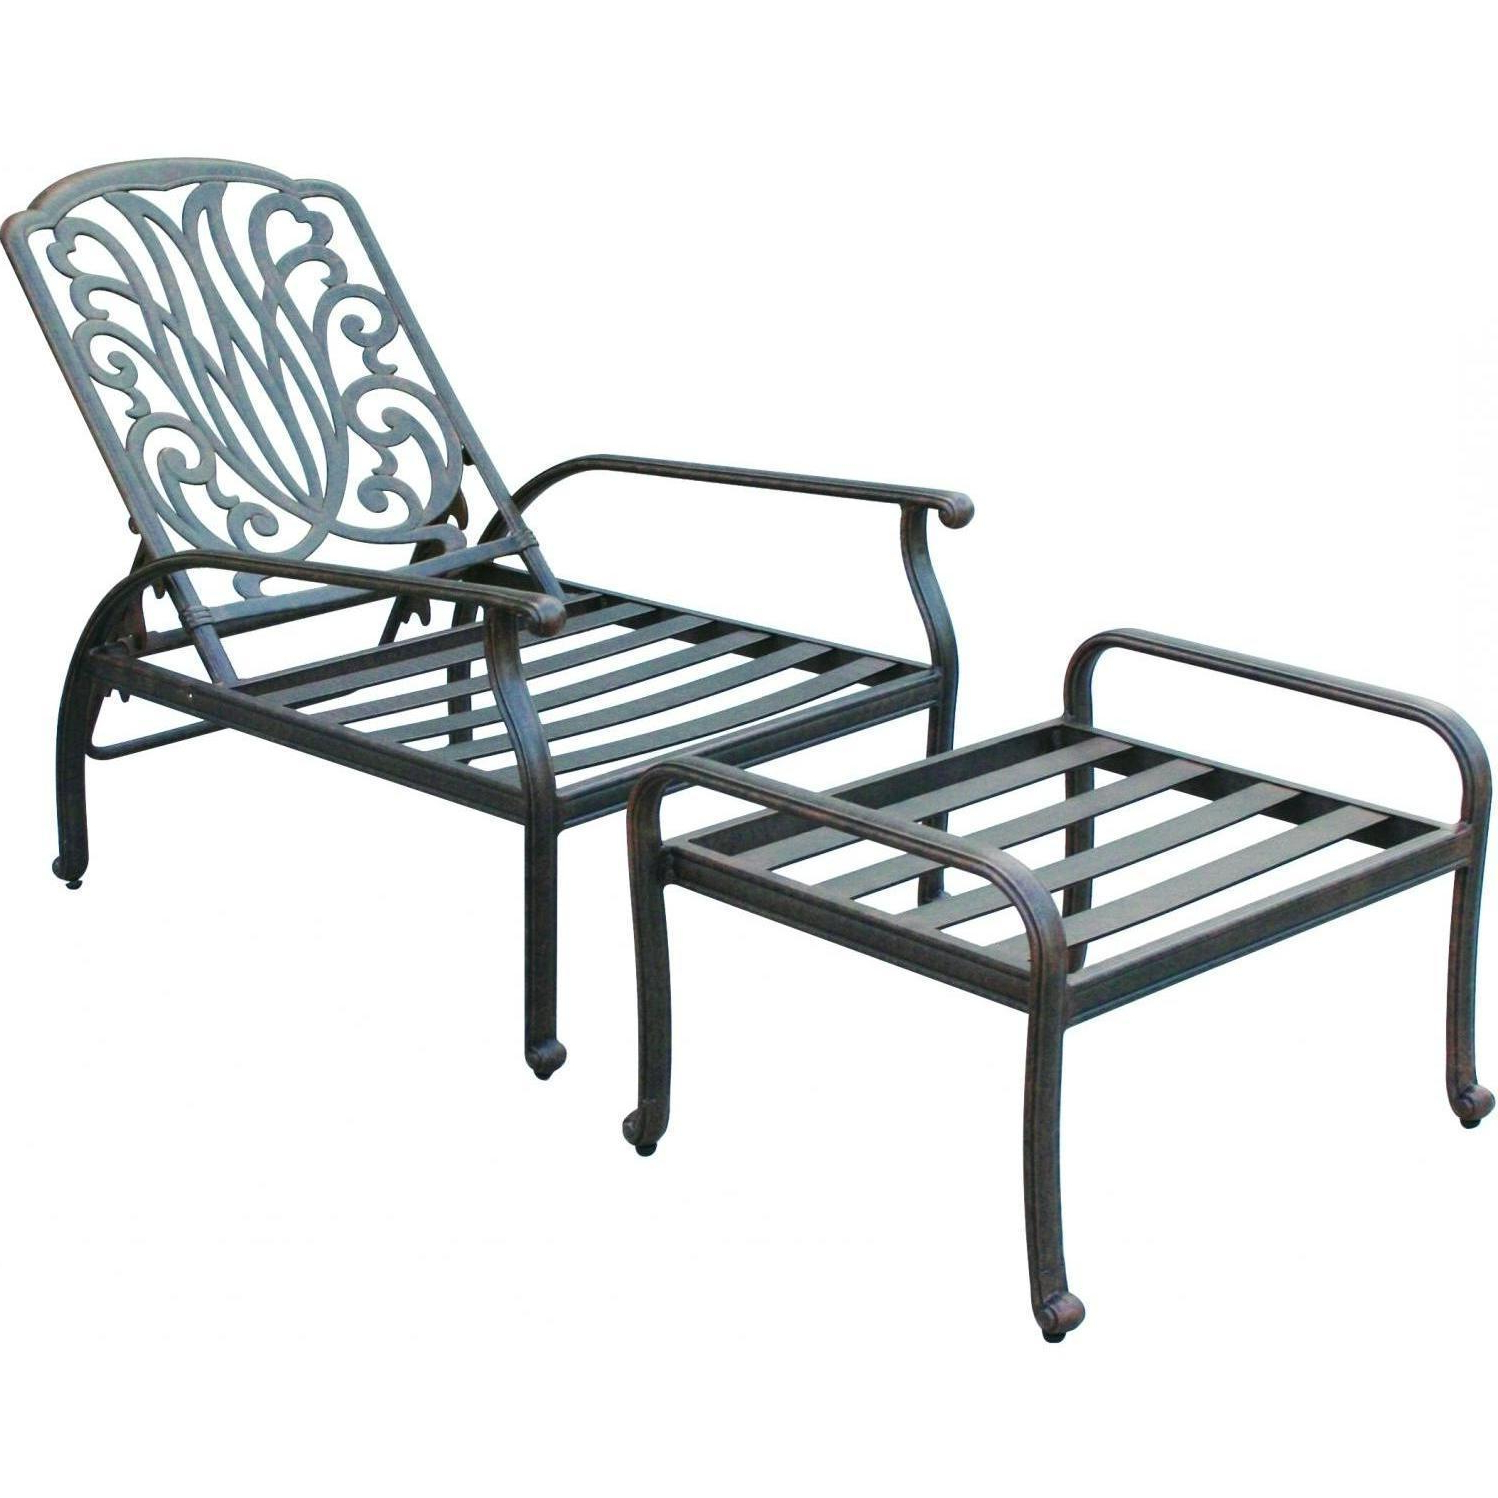 Darlee Elisabeth Cast Aluminum Patio Reclining Club Chair With Well Liked Outdoor Patio Lounge Chairs With Ottoman (View 10 of 25)